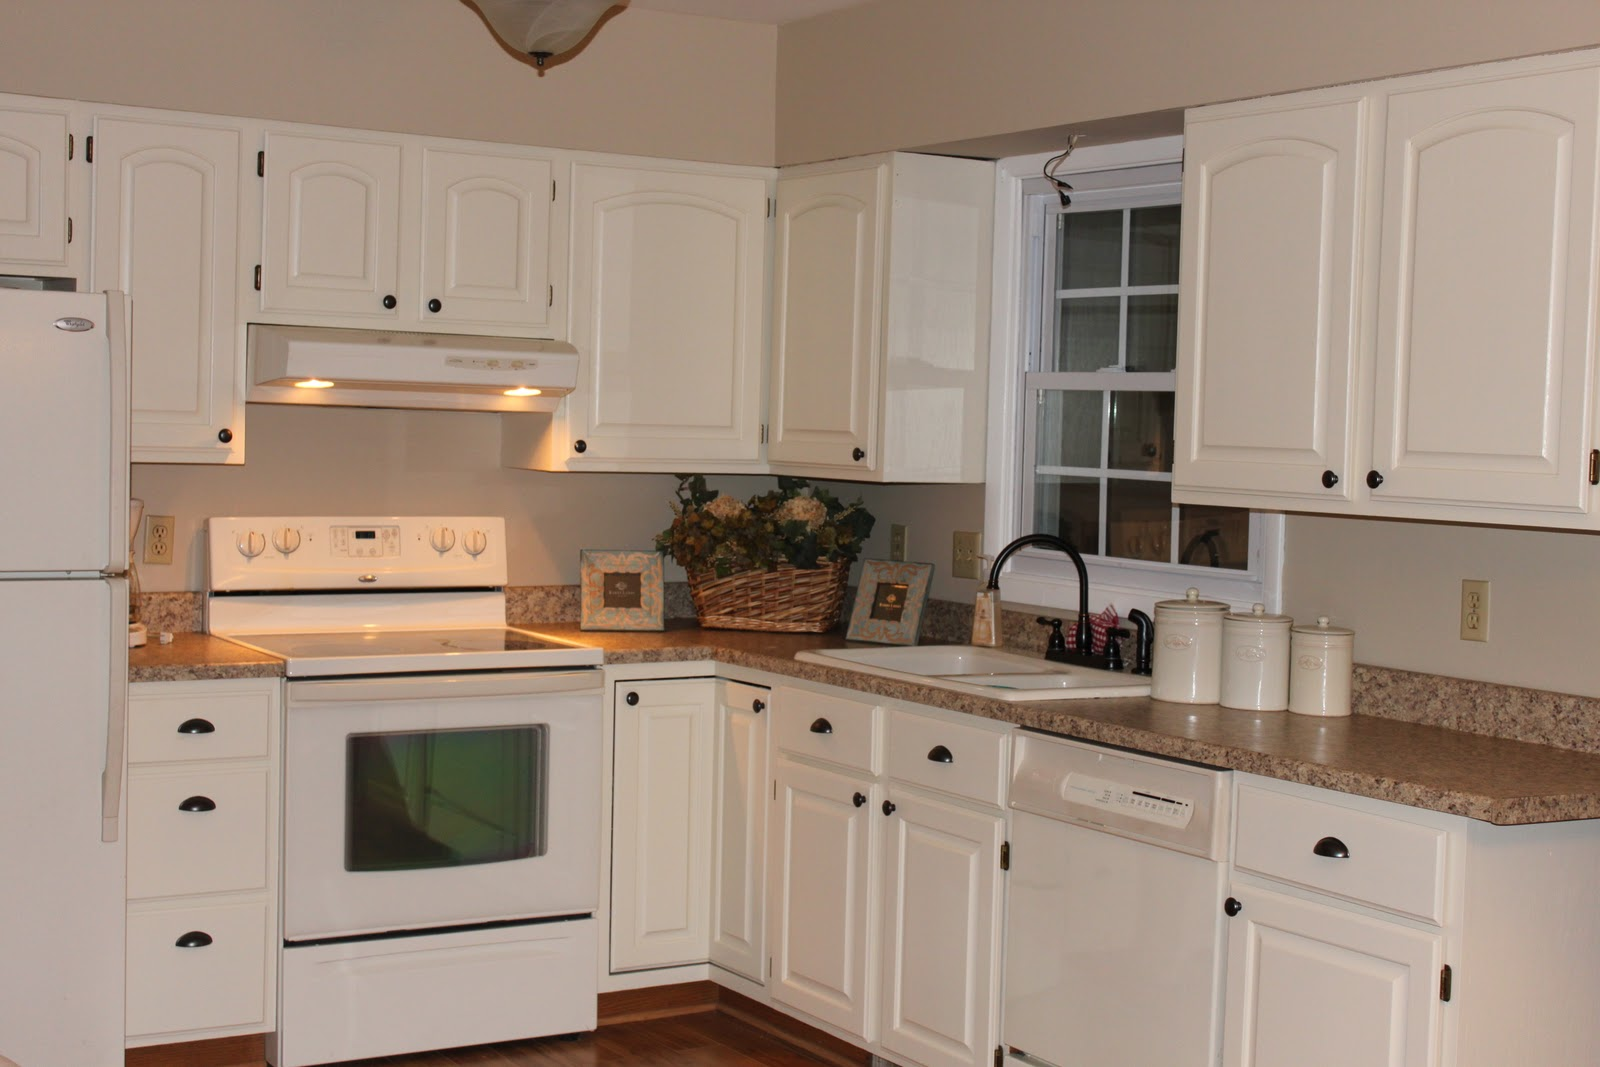 Best Kitchen Gallery: Amazing Taupe Kitchen Cabi S Pics Designs Dievoon of Taupe Painted Kitchen Cabinet Colors on rachelxblog.com